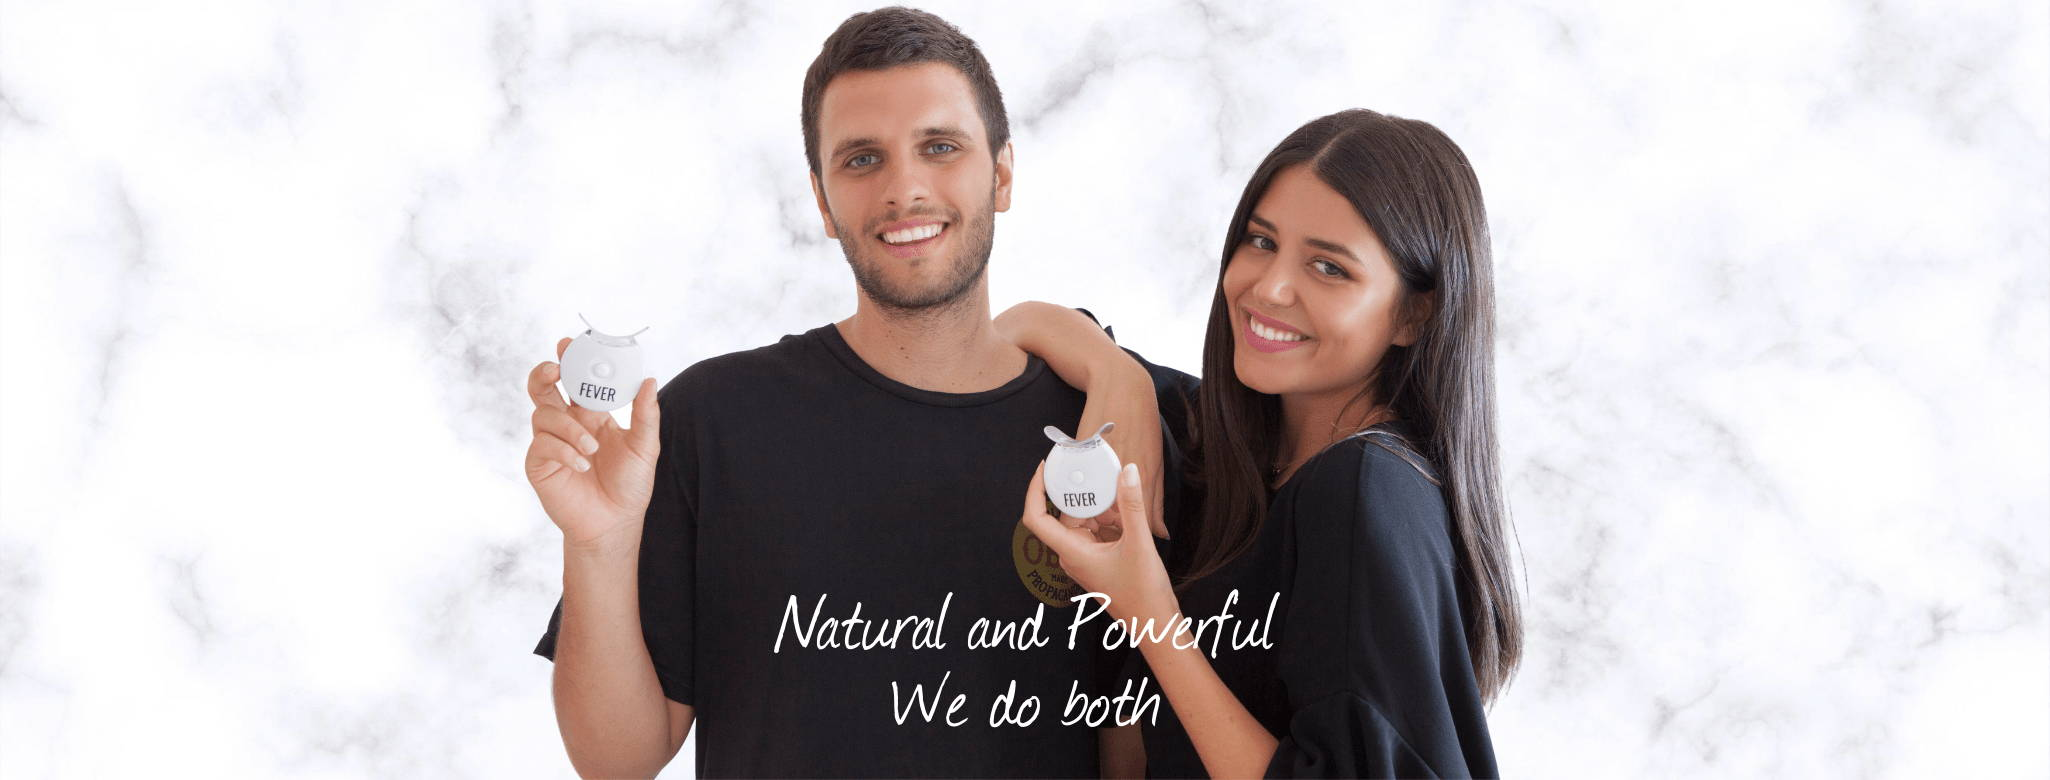 fever teeth whitening his and hers